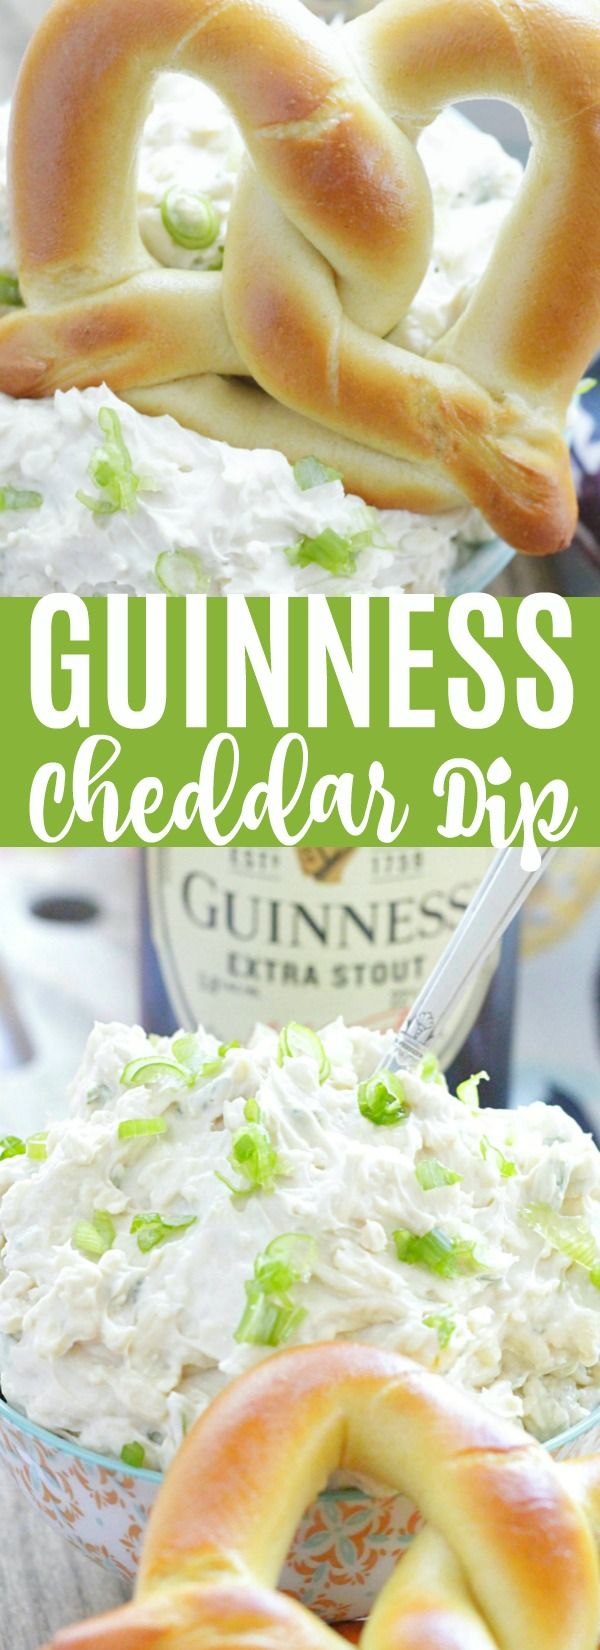 Guinness Cheddar Dip is like an Irish version of beer cheese and is a terrific last-minute appetizer to make for your St. Patrick's Day celebration.